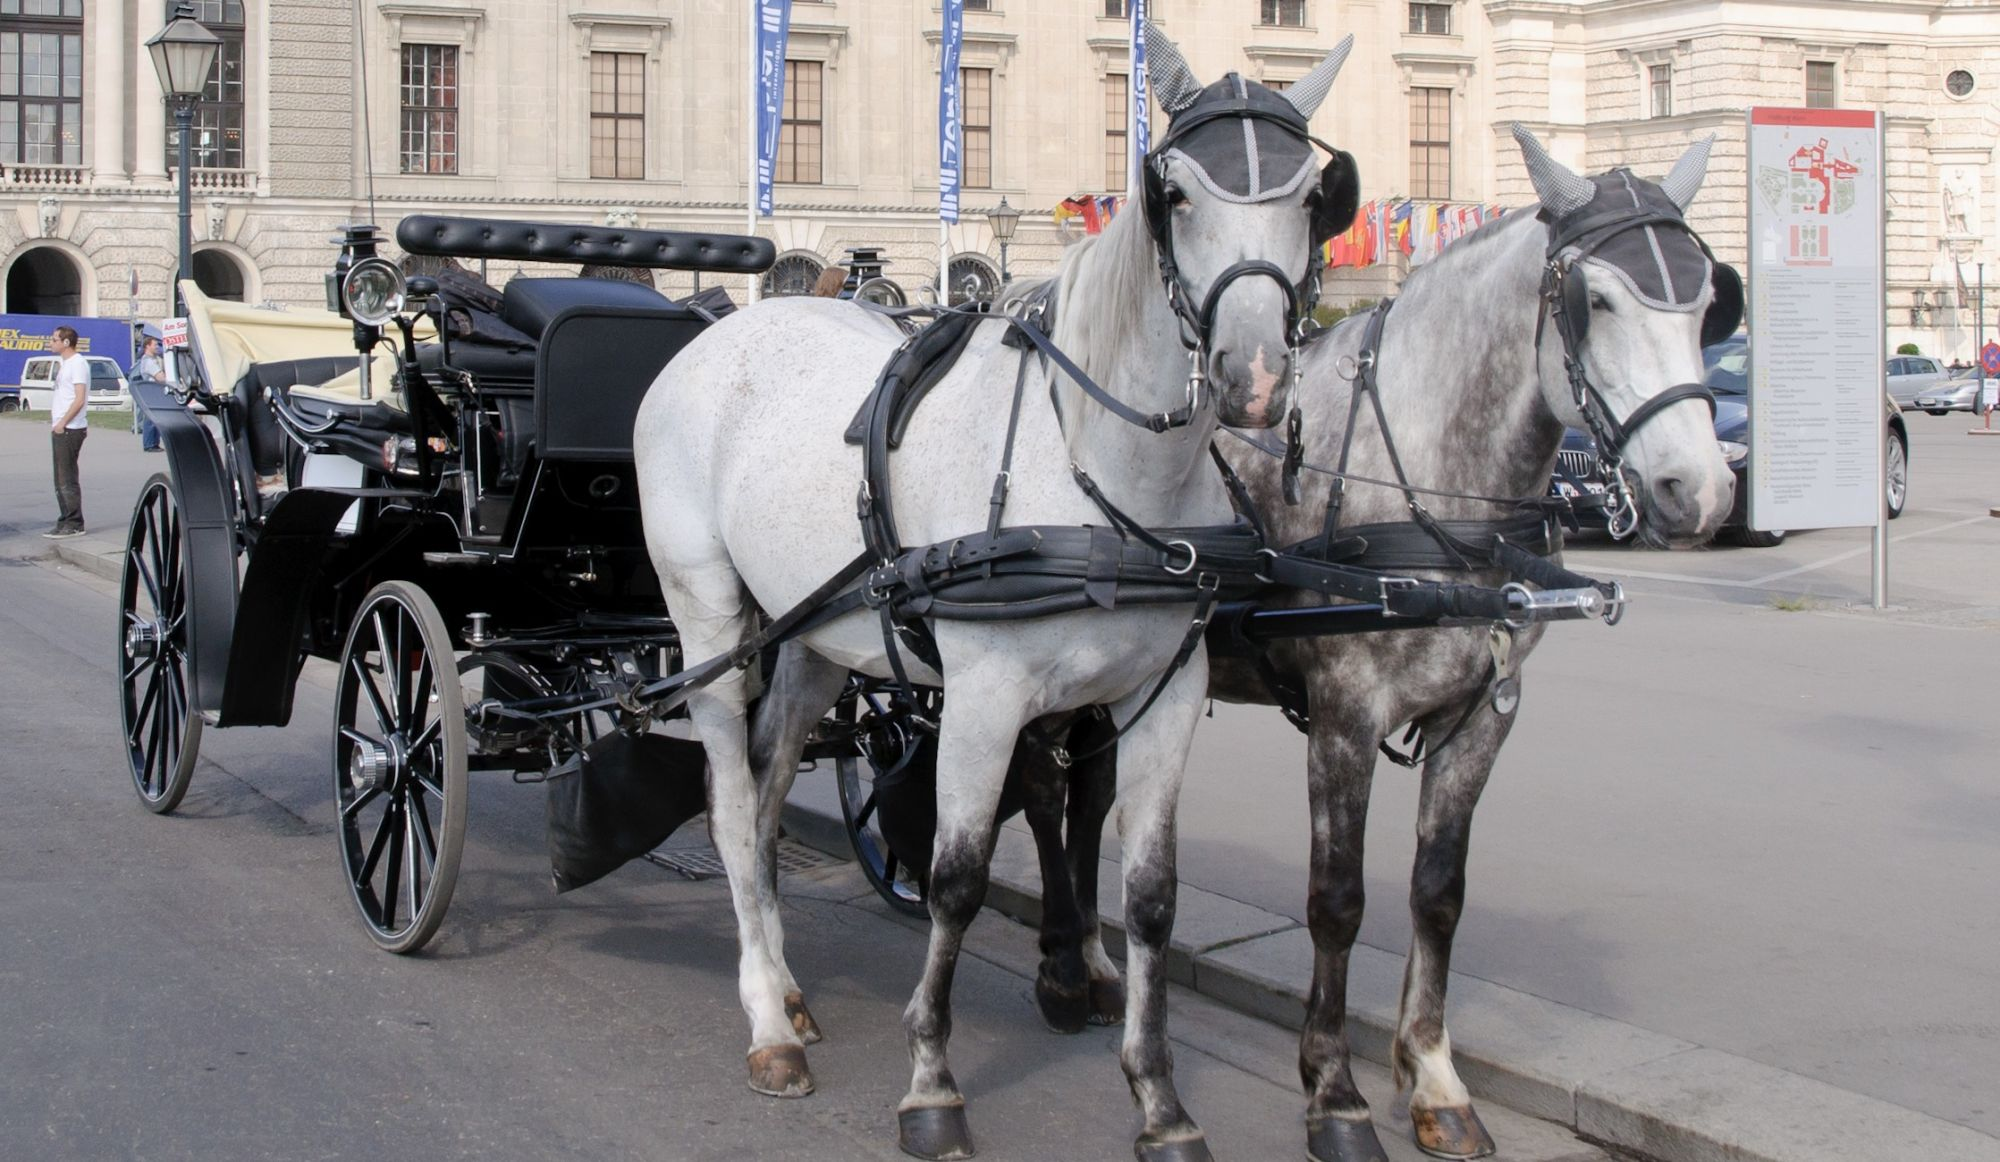 Montreal will Ban Horse-Drawn Carriages